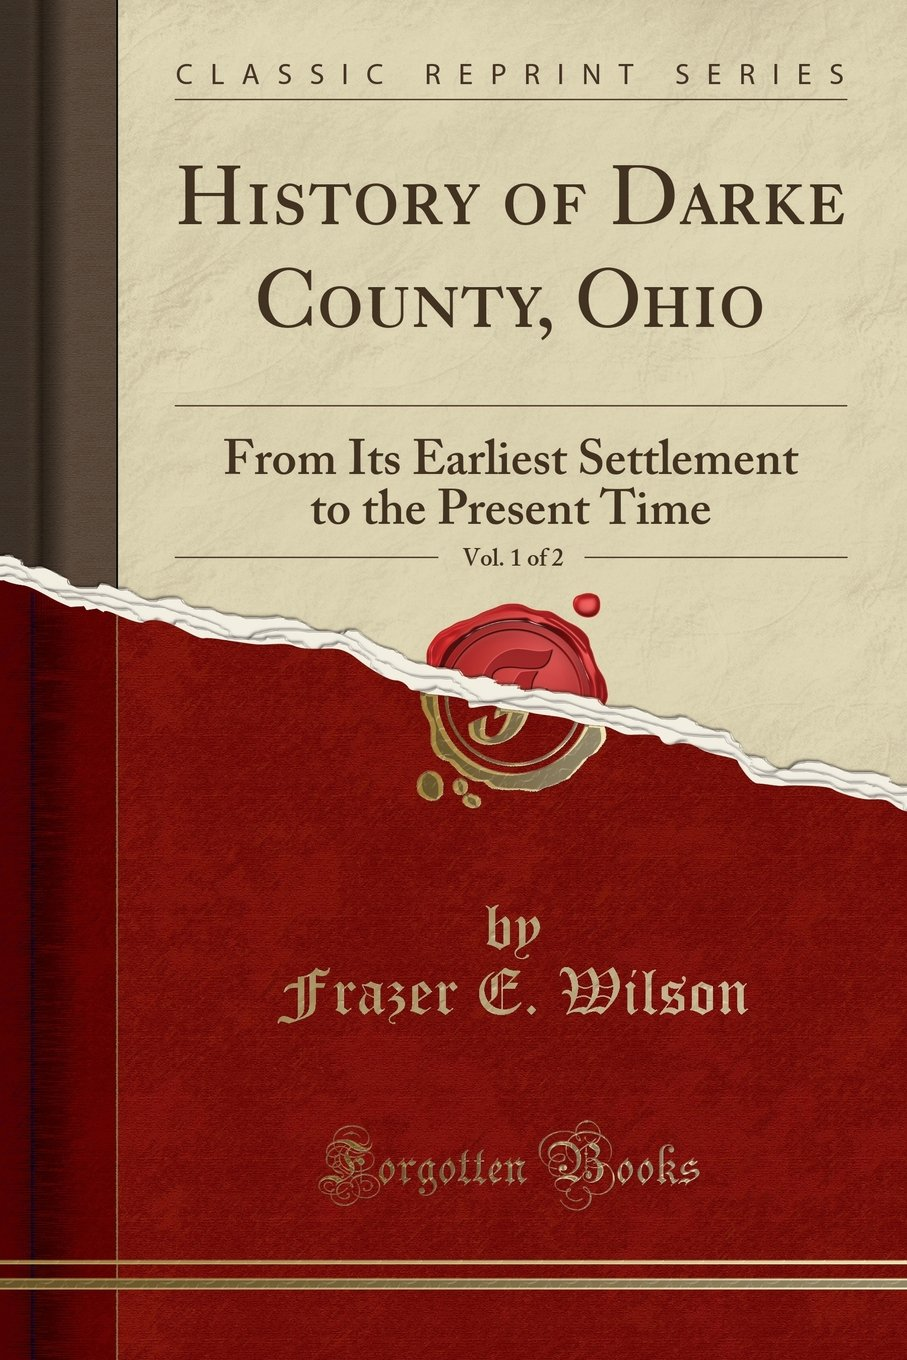 History of Darke County, Ohio, Vol. 1 of 2: From Its Earliest Settlement to the Present Time (Classic Reprint) ebook